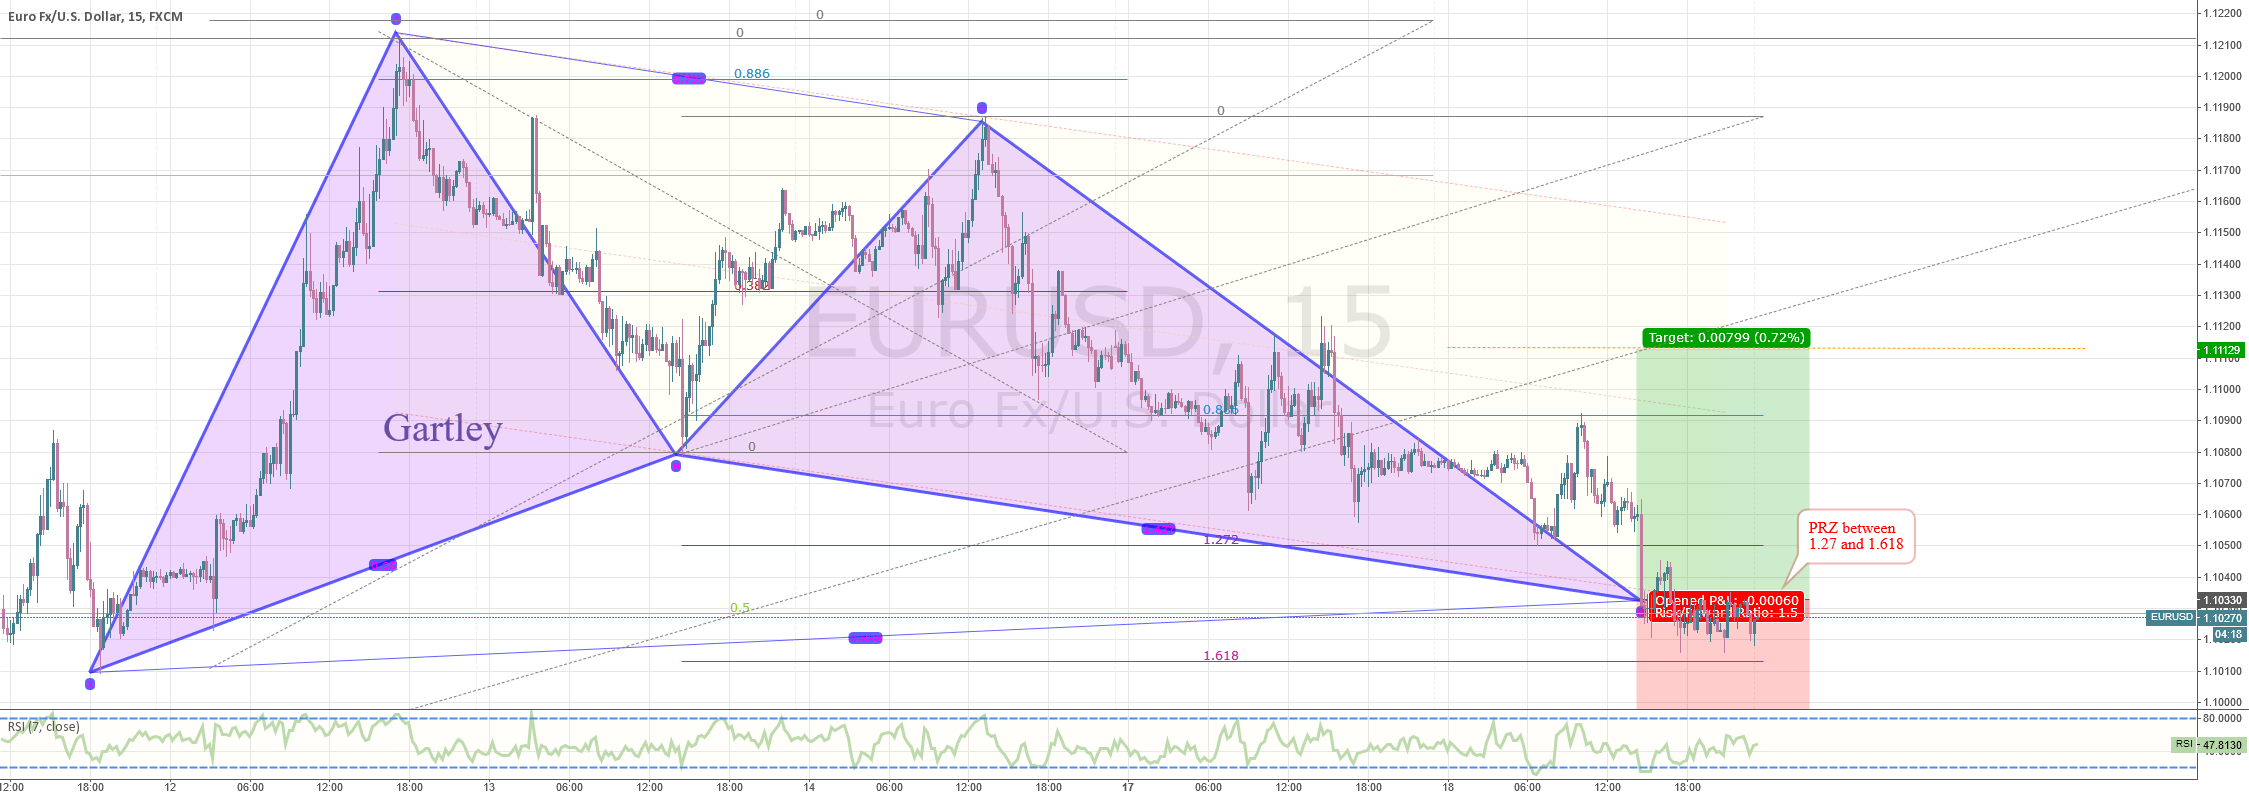 EURUSD M15/H1 - Mr Gartley